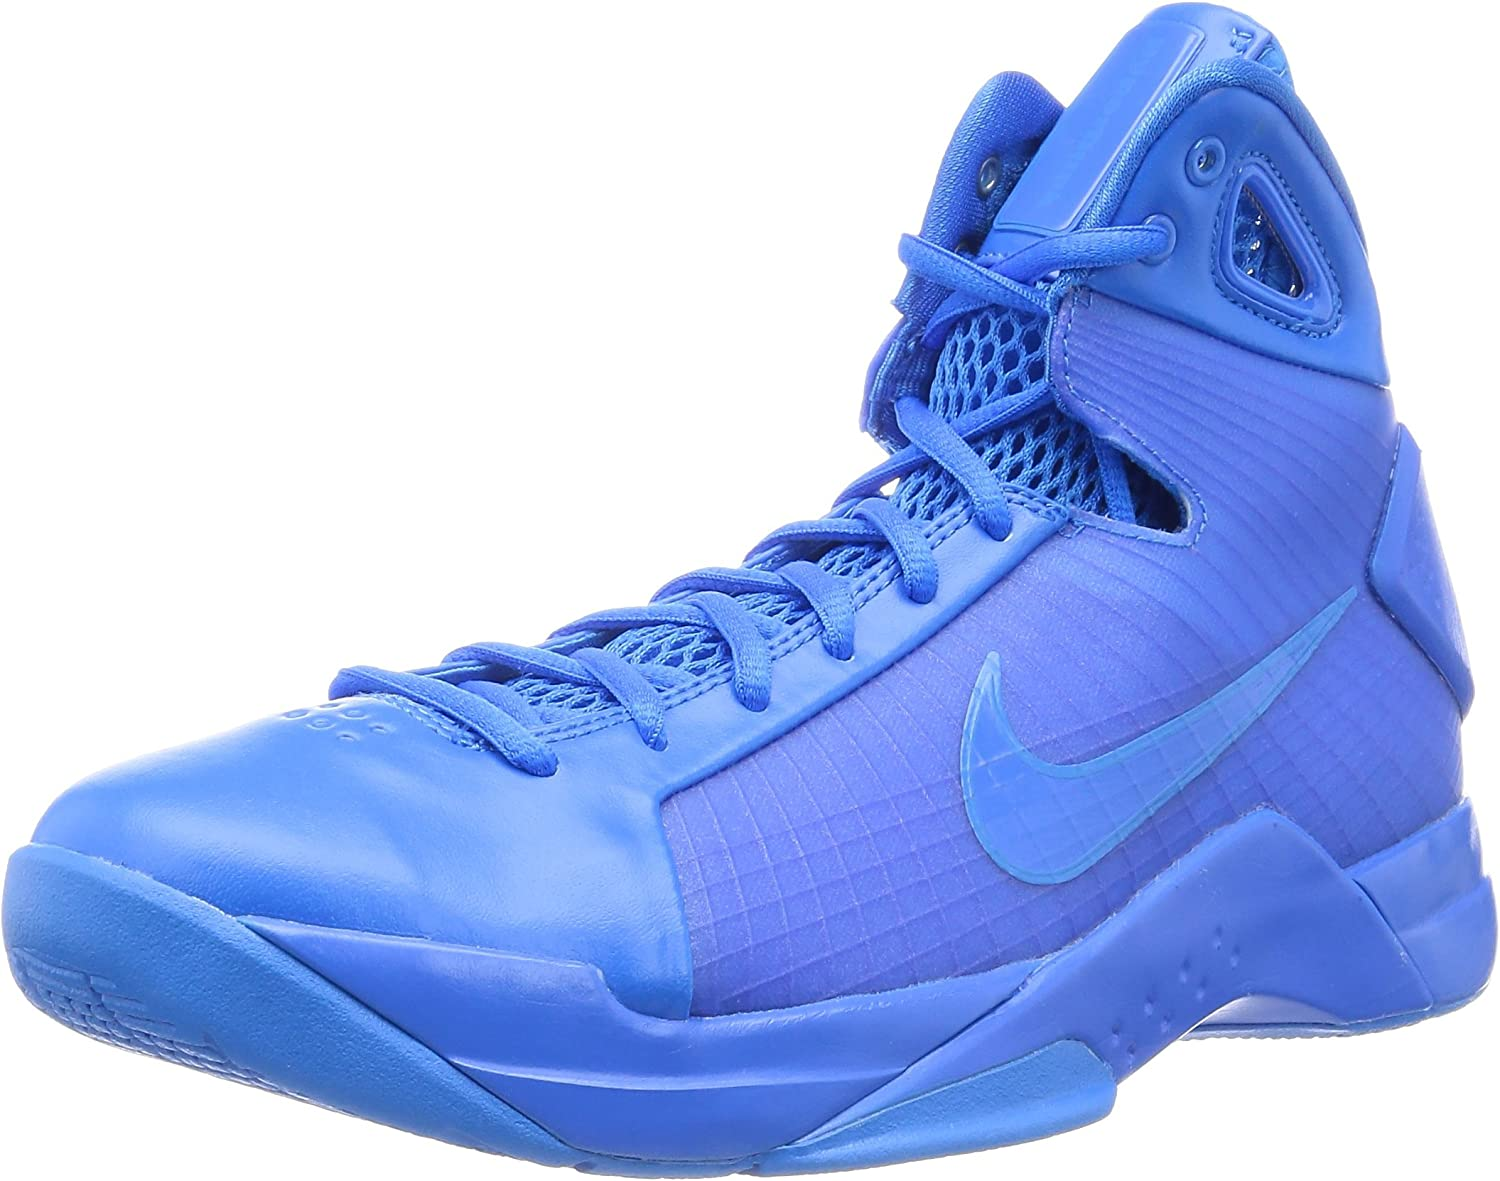 Nike Men's Hyperdunk 08, PHOTO blueeE PHOTO blueeE